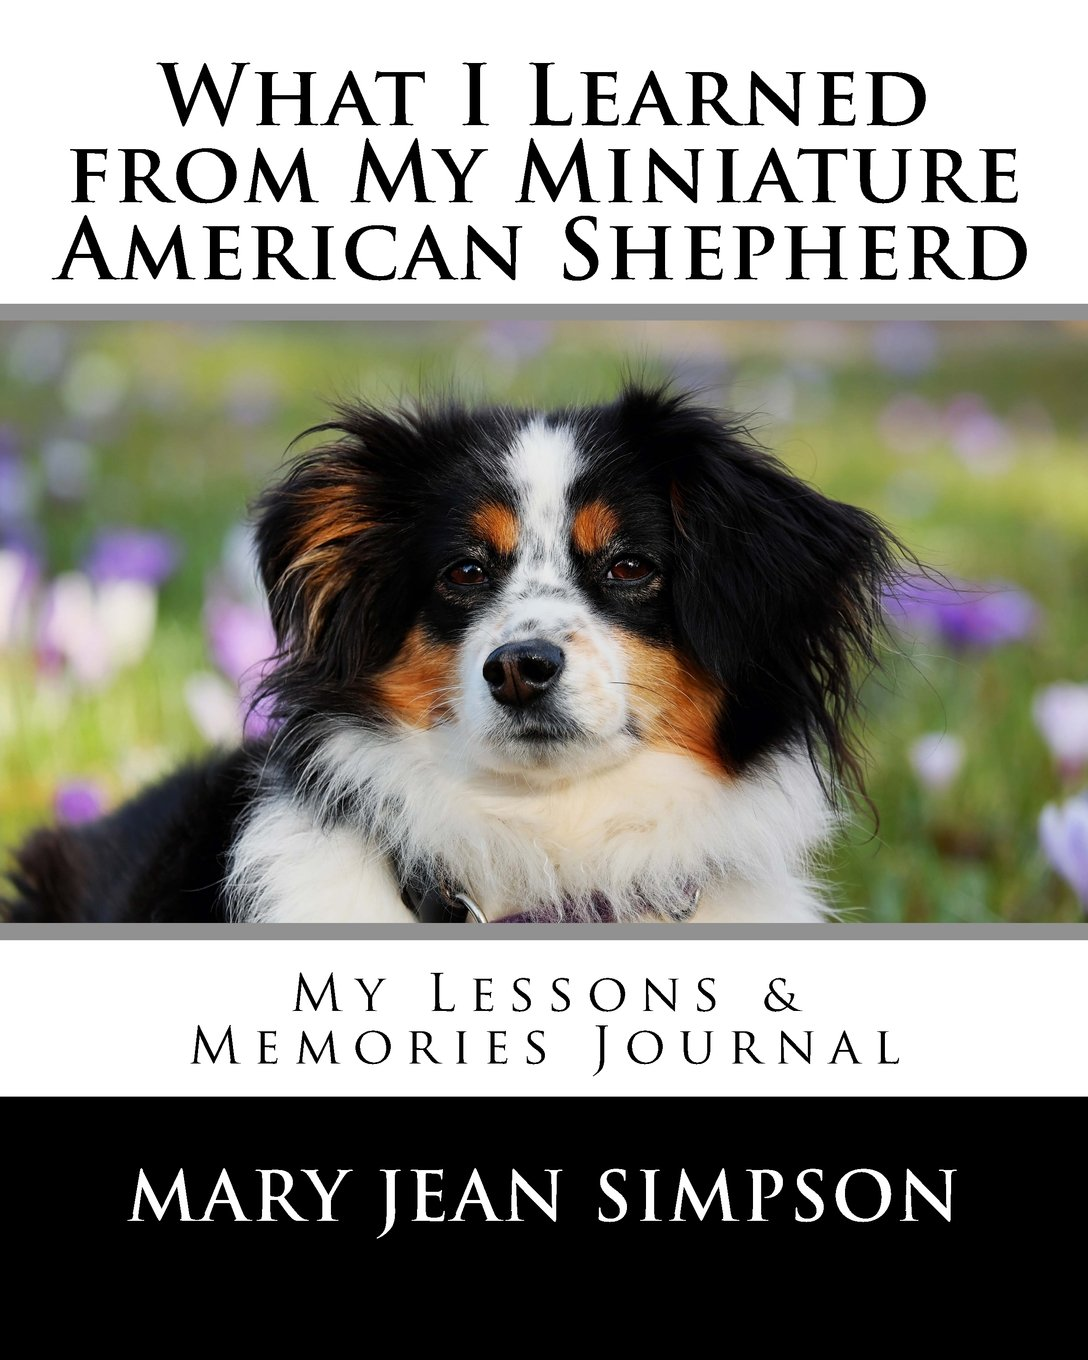 Download What I Learned from My Miniature American Shepherd: My Lessons & Memories Journal ebook